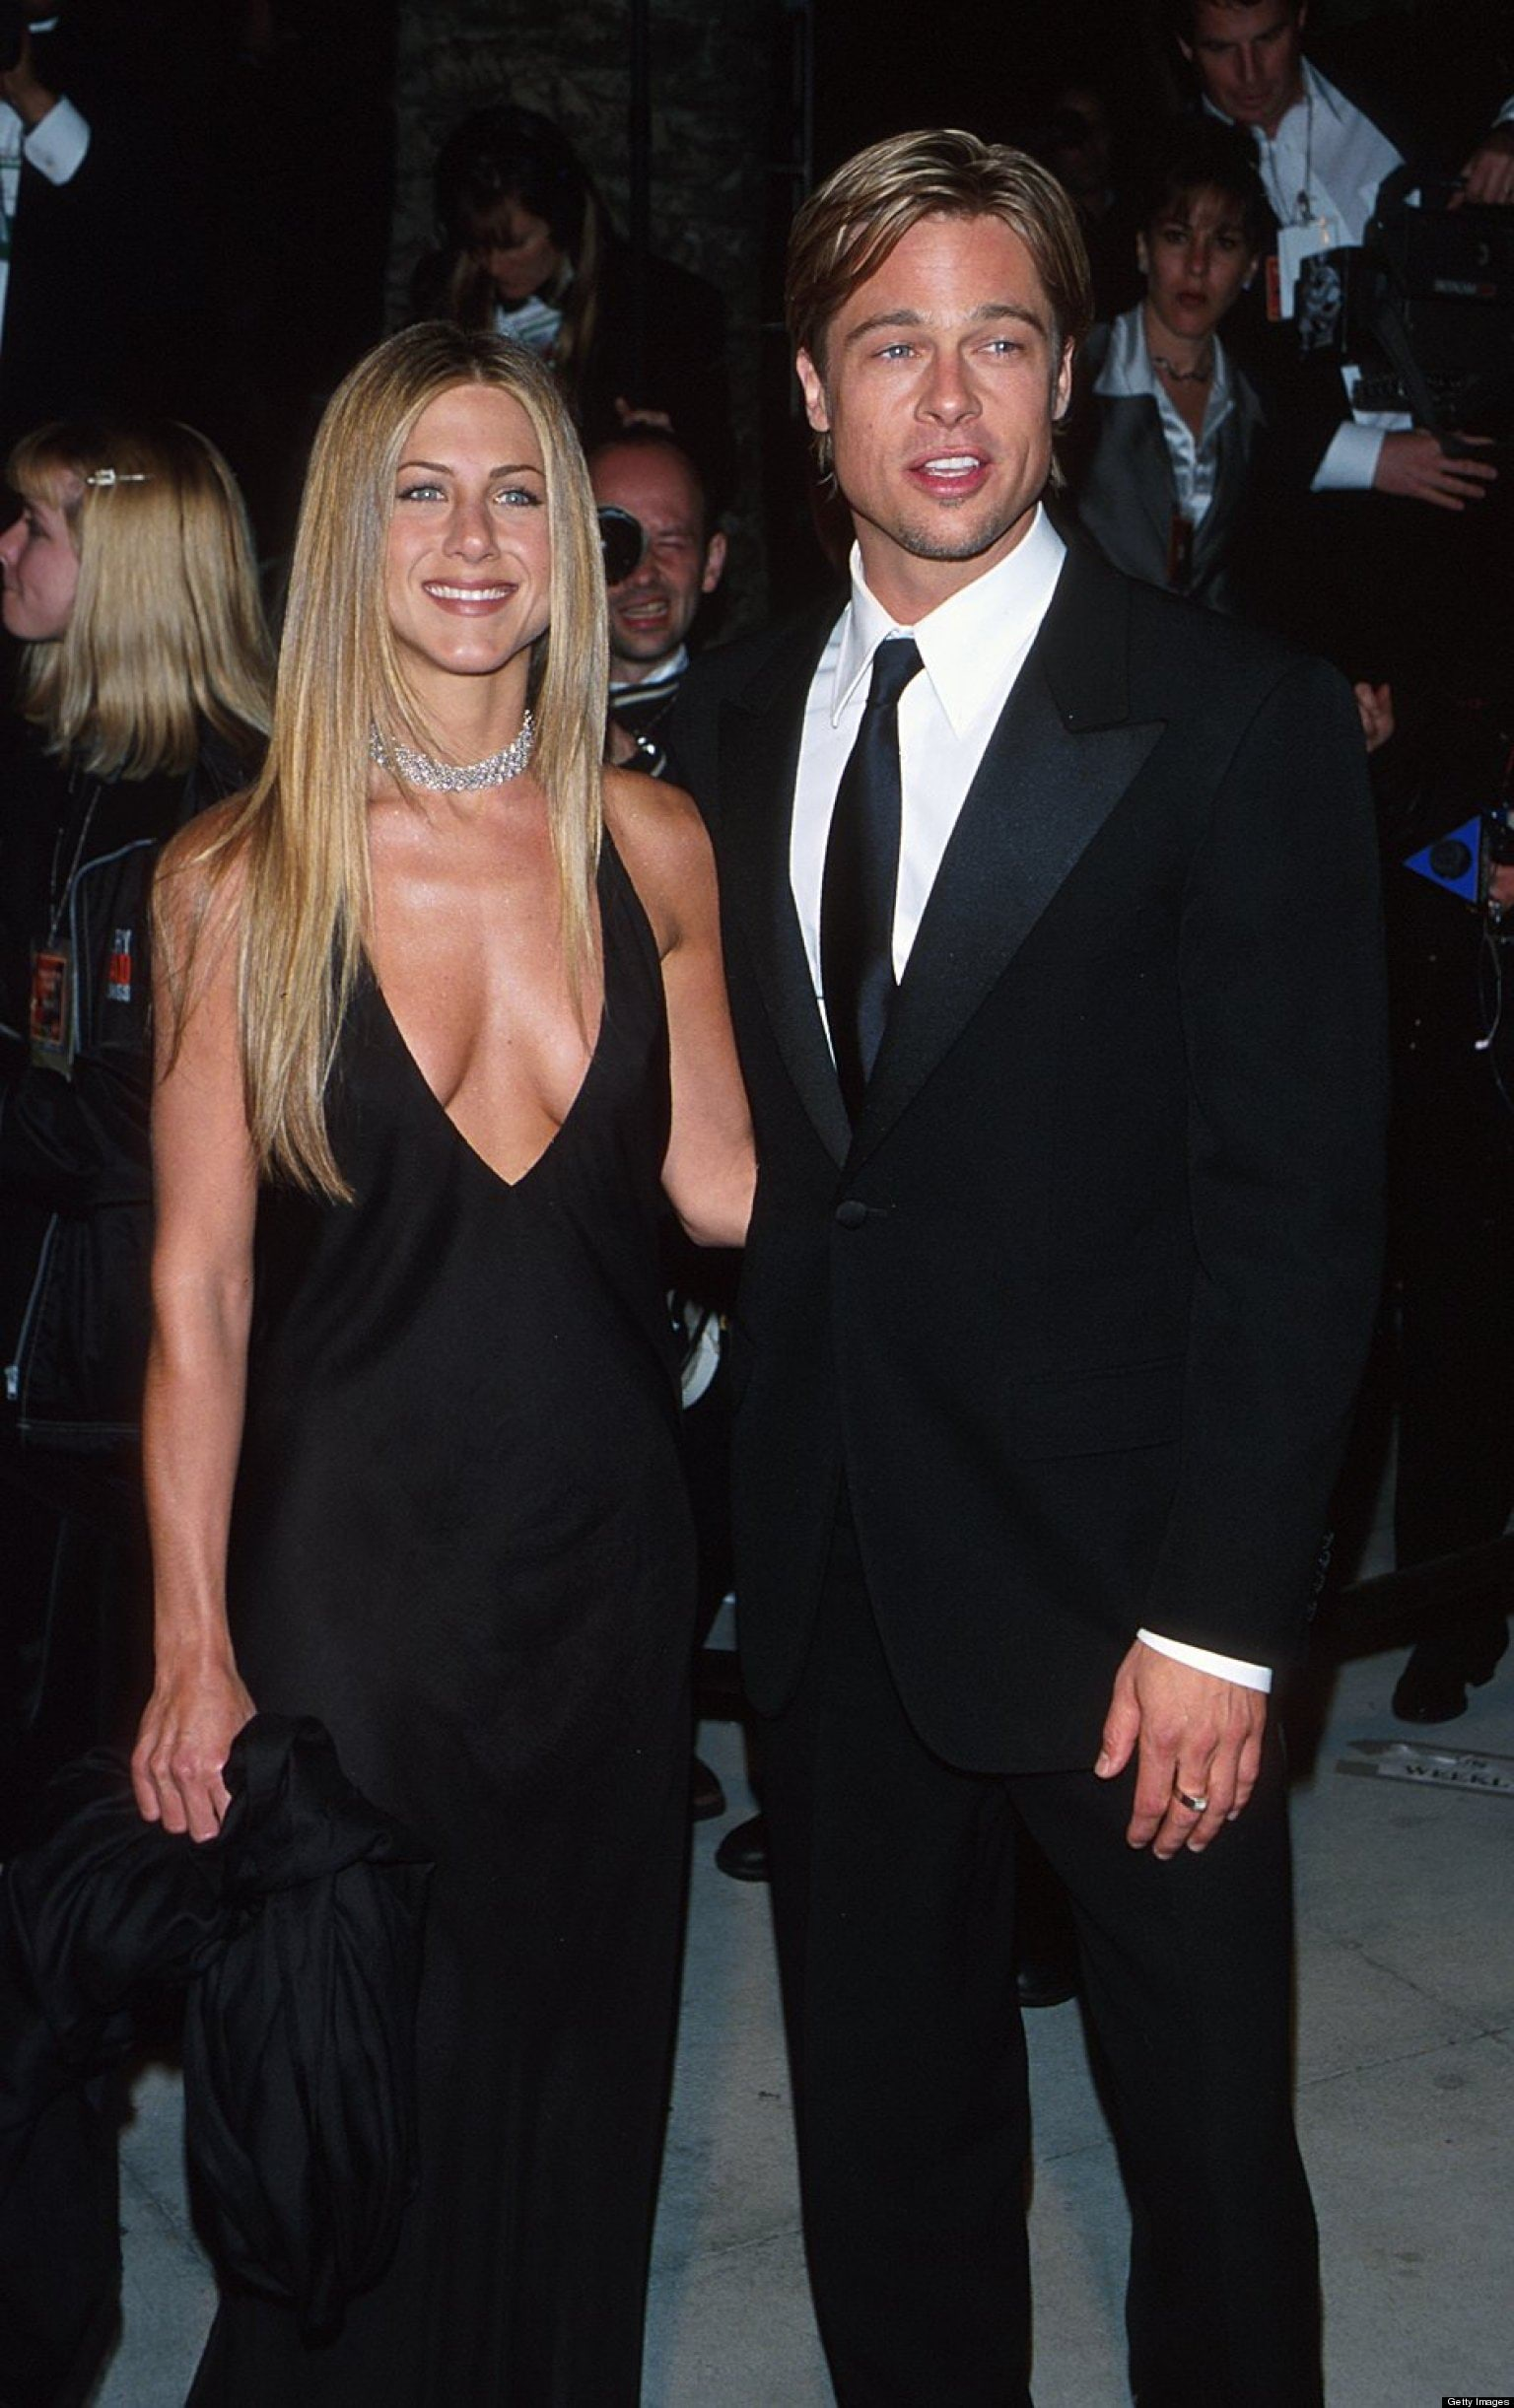 Jennifer Aniston and Brad Pitt (Photo by Rob Beccaris/WireImage)